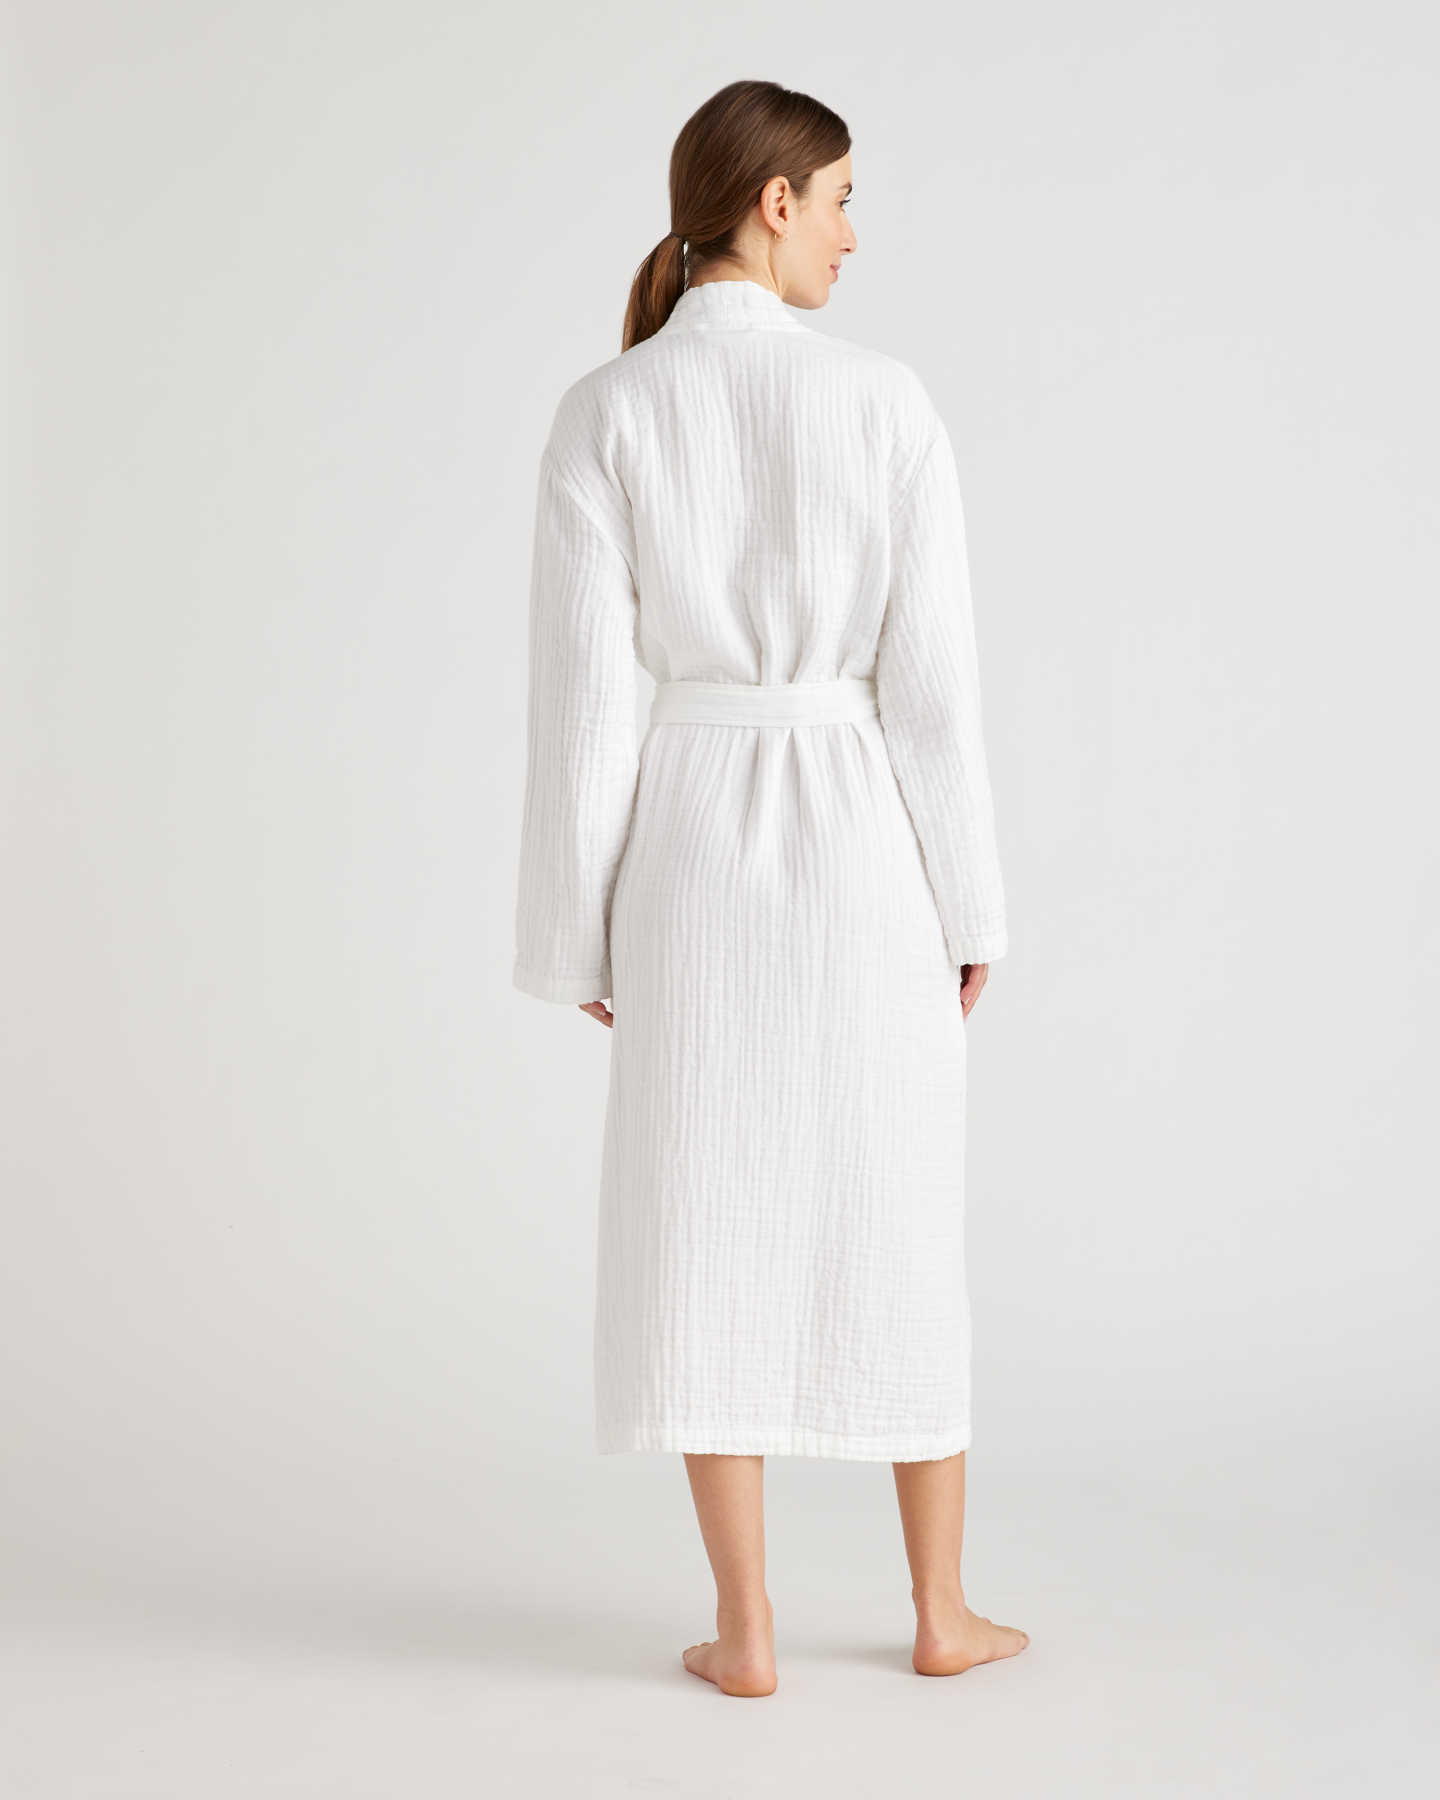 Organic Turkish Cotton Gauze Robe - White - 2